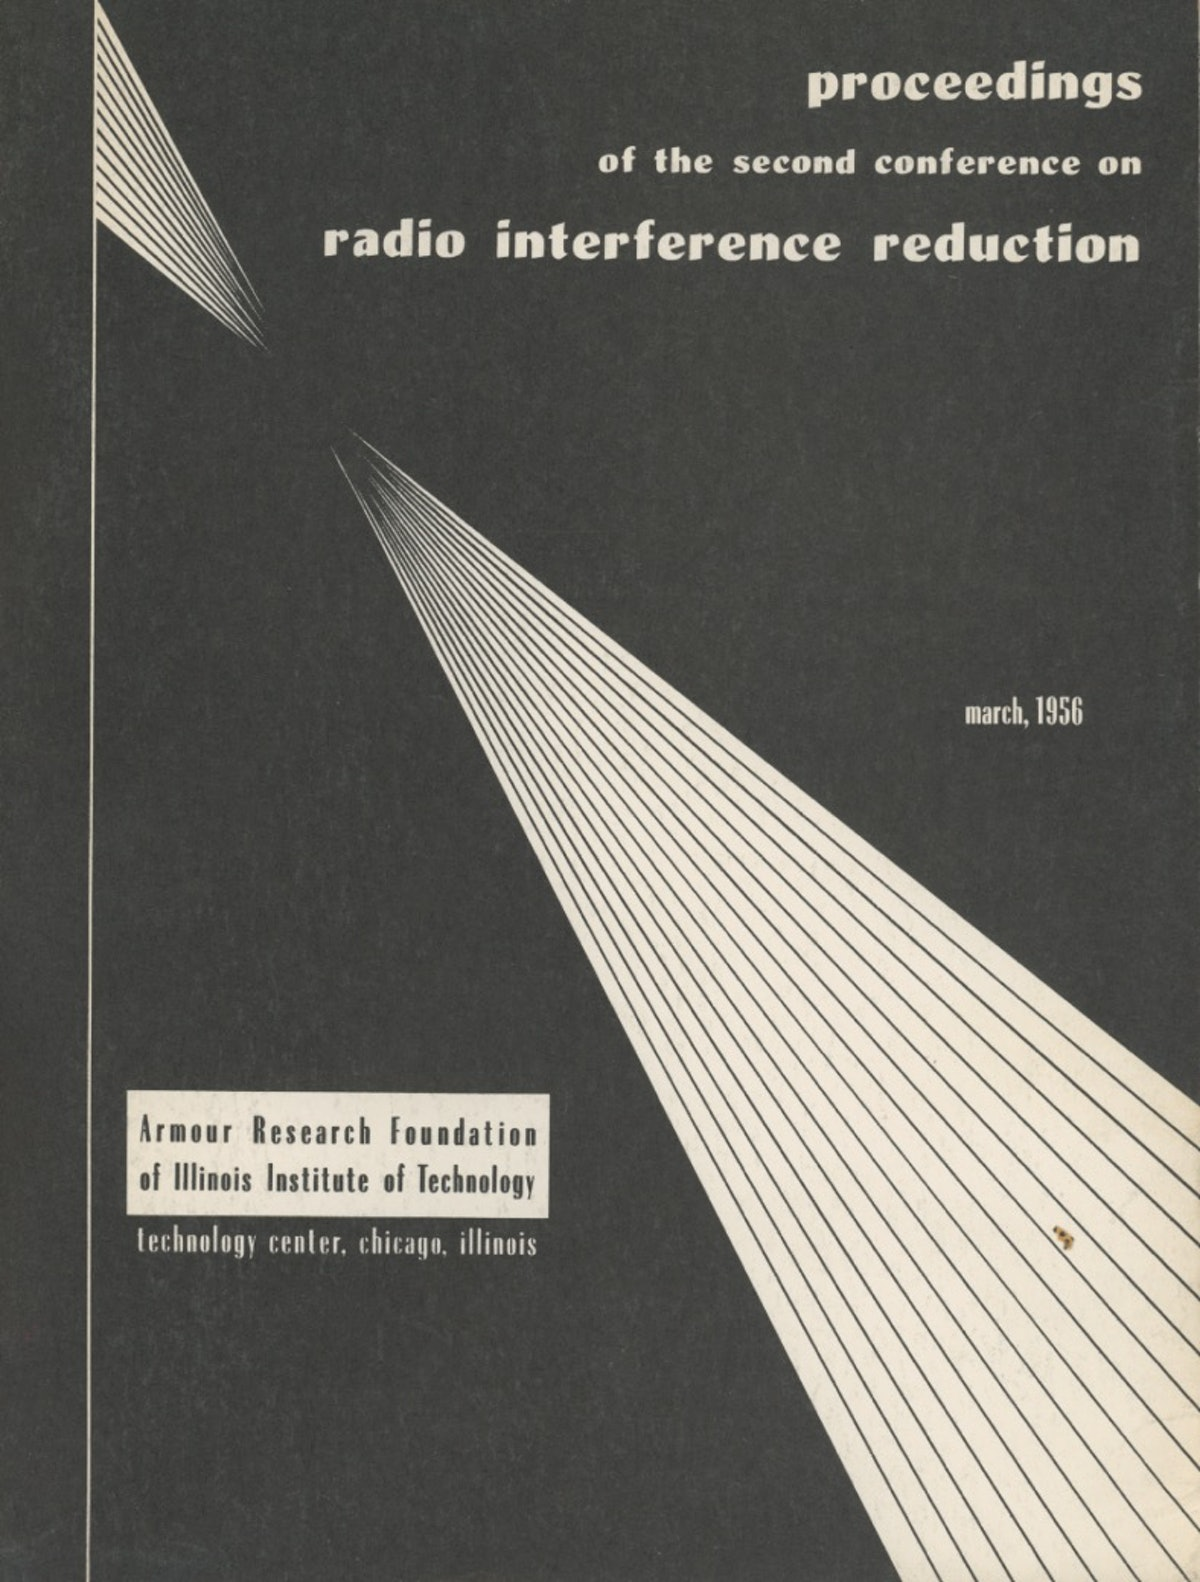 Proceedings of the Second Conference on Radio Interference Reduction